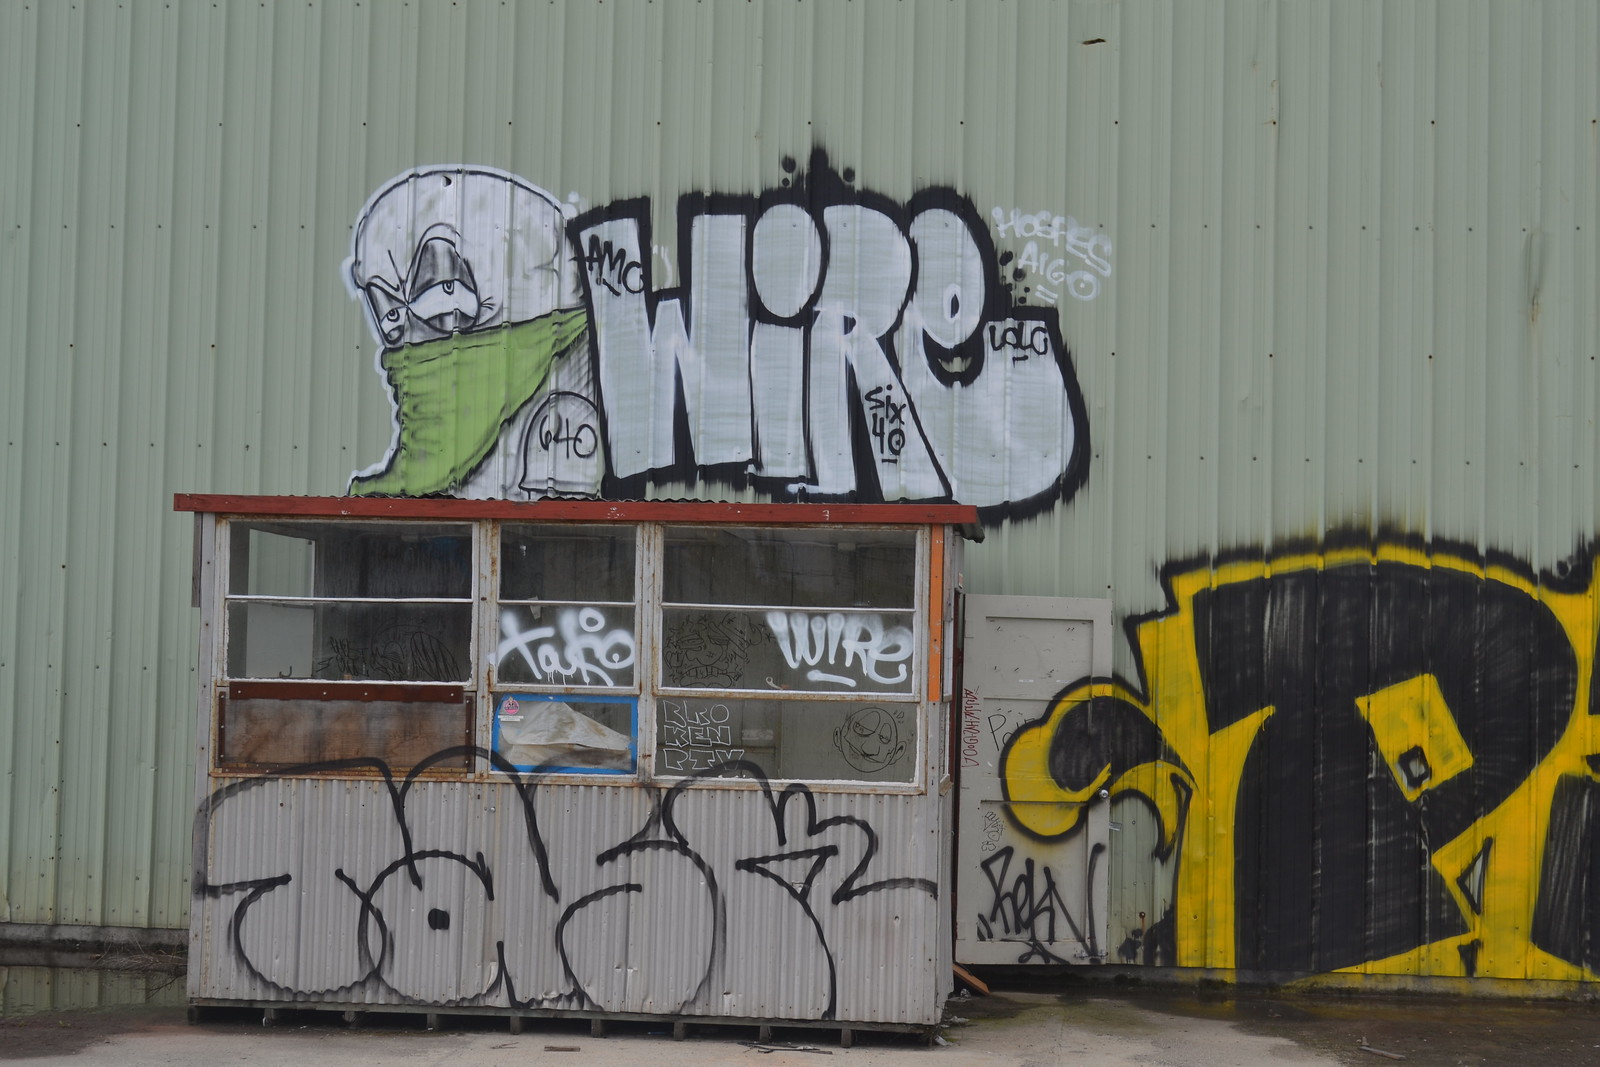 LOGO, WIRE, 640, PTV, STM, LOL, Street Art, Ras Terms, BDS, BSK, 7UP, GHOST OWL, FRANK,